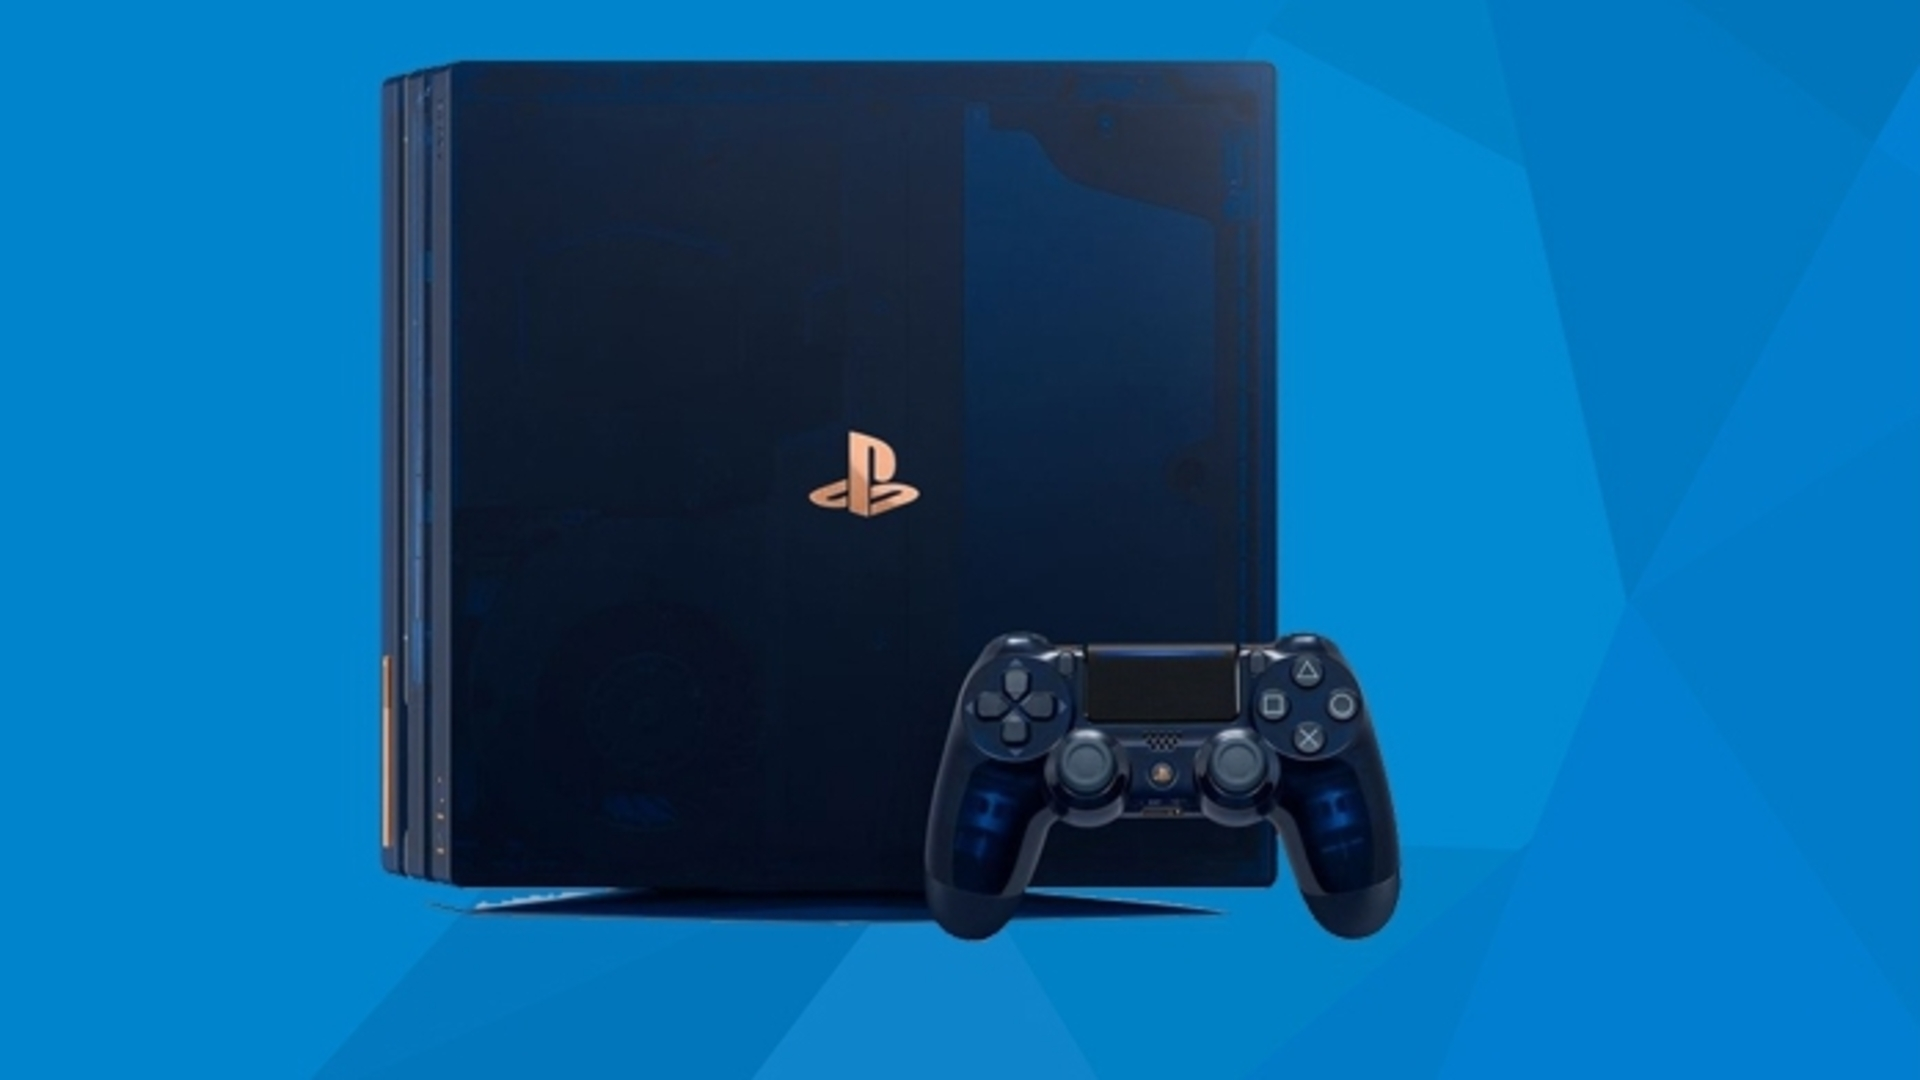 ps4 black friday deals 2018 the best offers on consoles games psvr and more. Black Bedroom Furniture Sets. Home Design Ideas